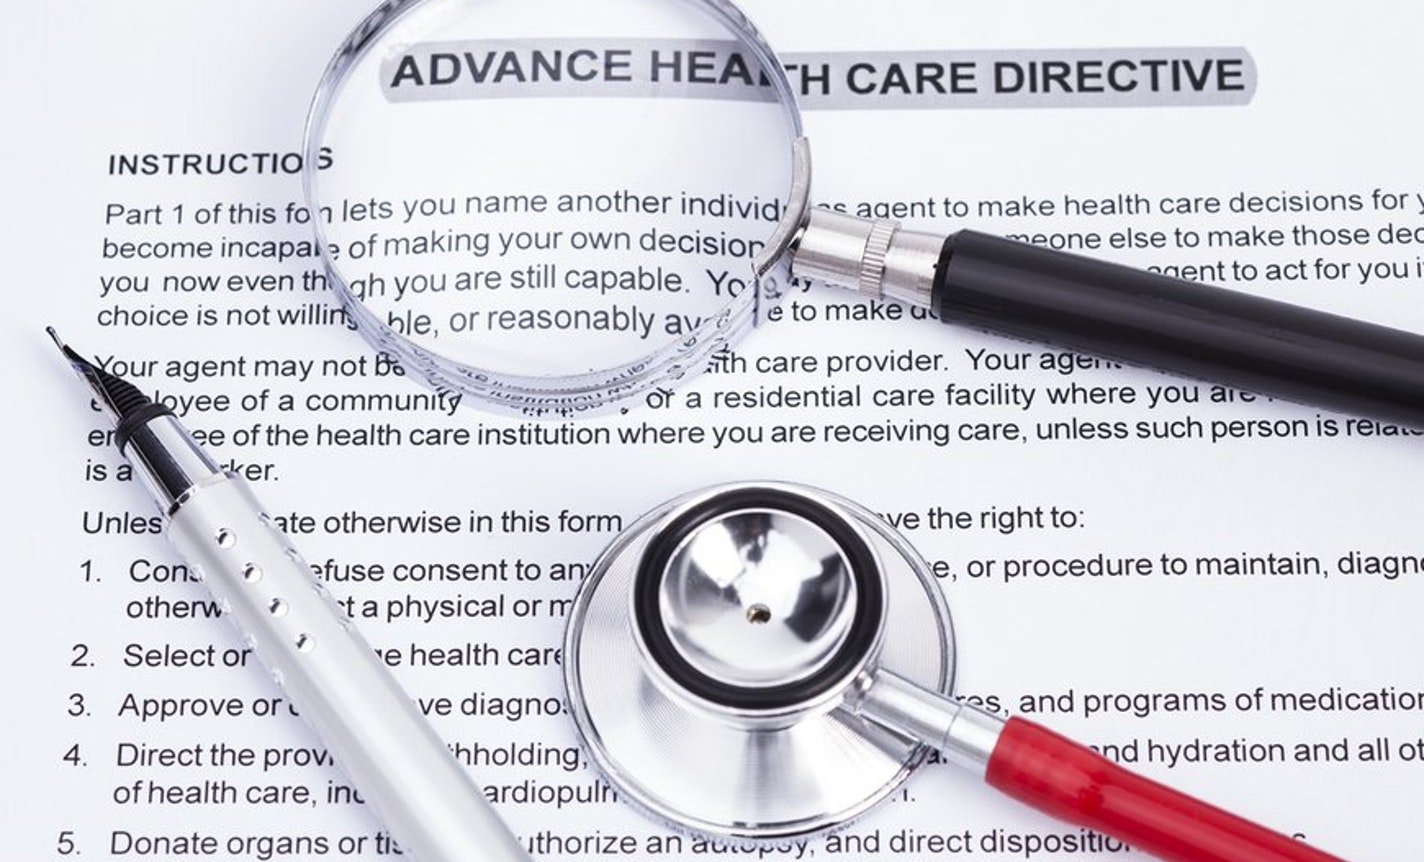 Advance Health Care Directive Workshop for Muslims